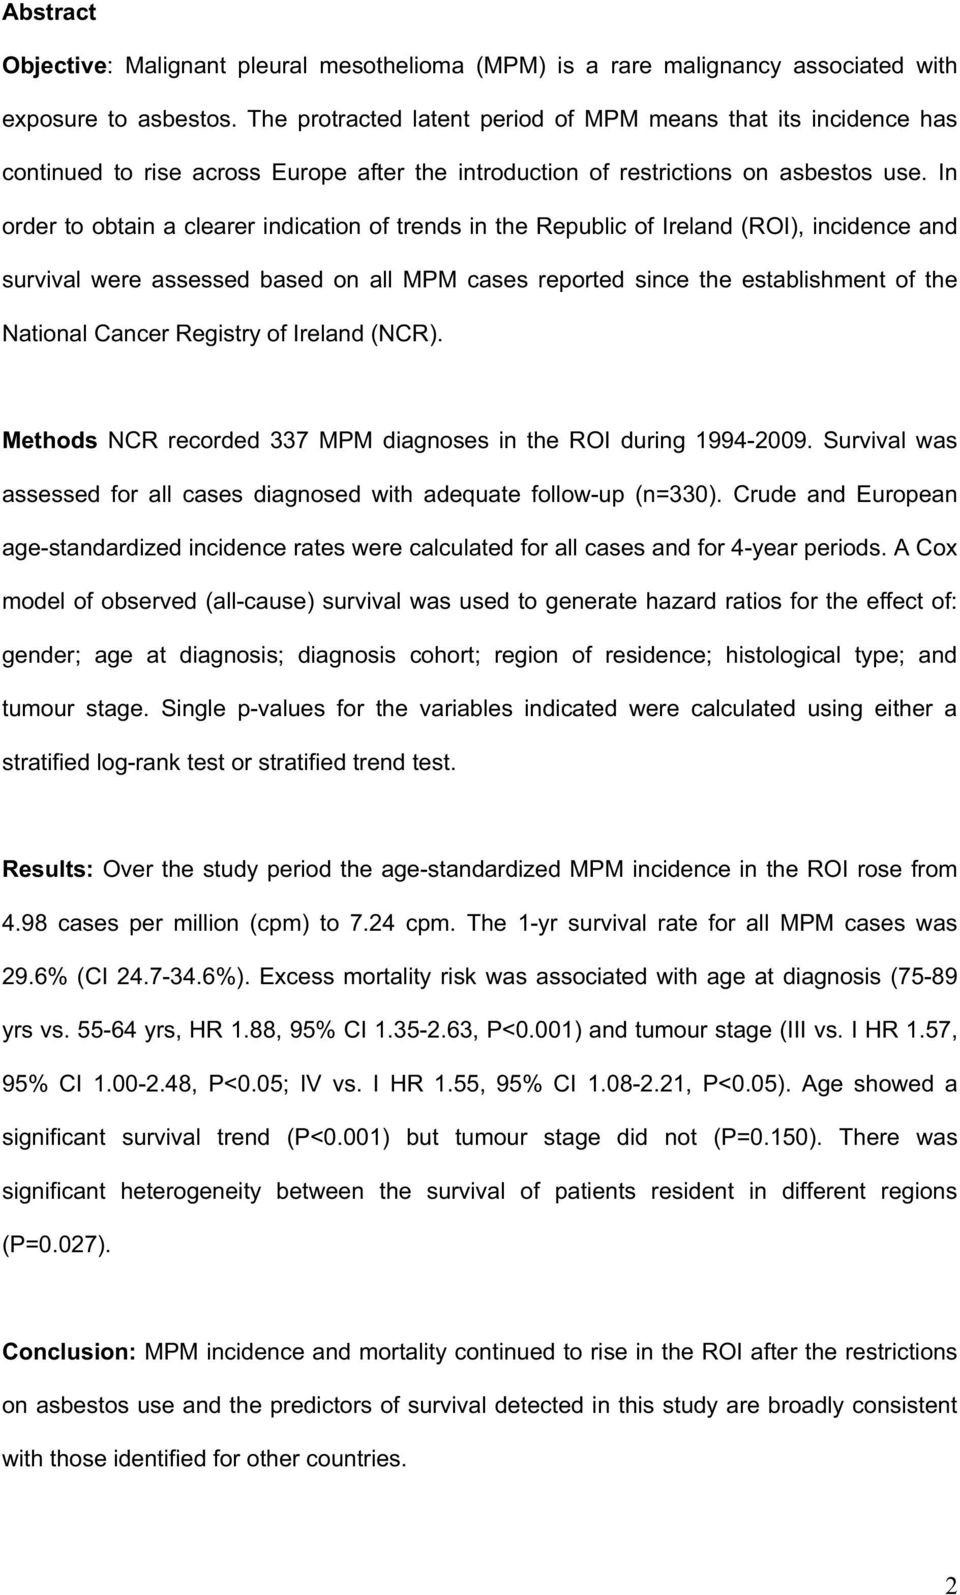 In order to obtain a clearer indication of trends in the Republic of Ireland (ROI), incidence and survival were assessed based on all MPM cases reported since the establishment of the National Cancer